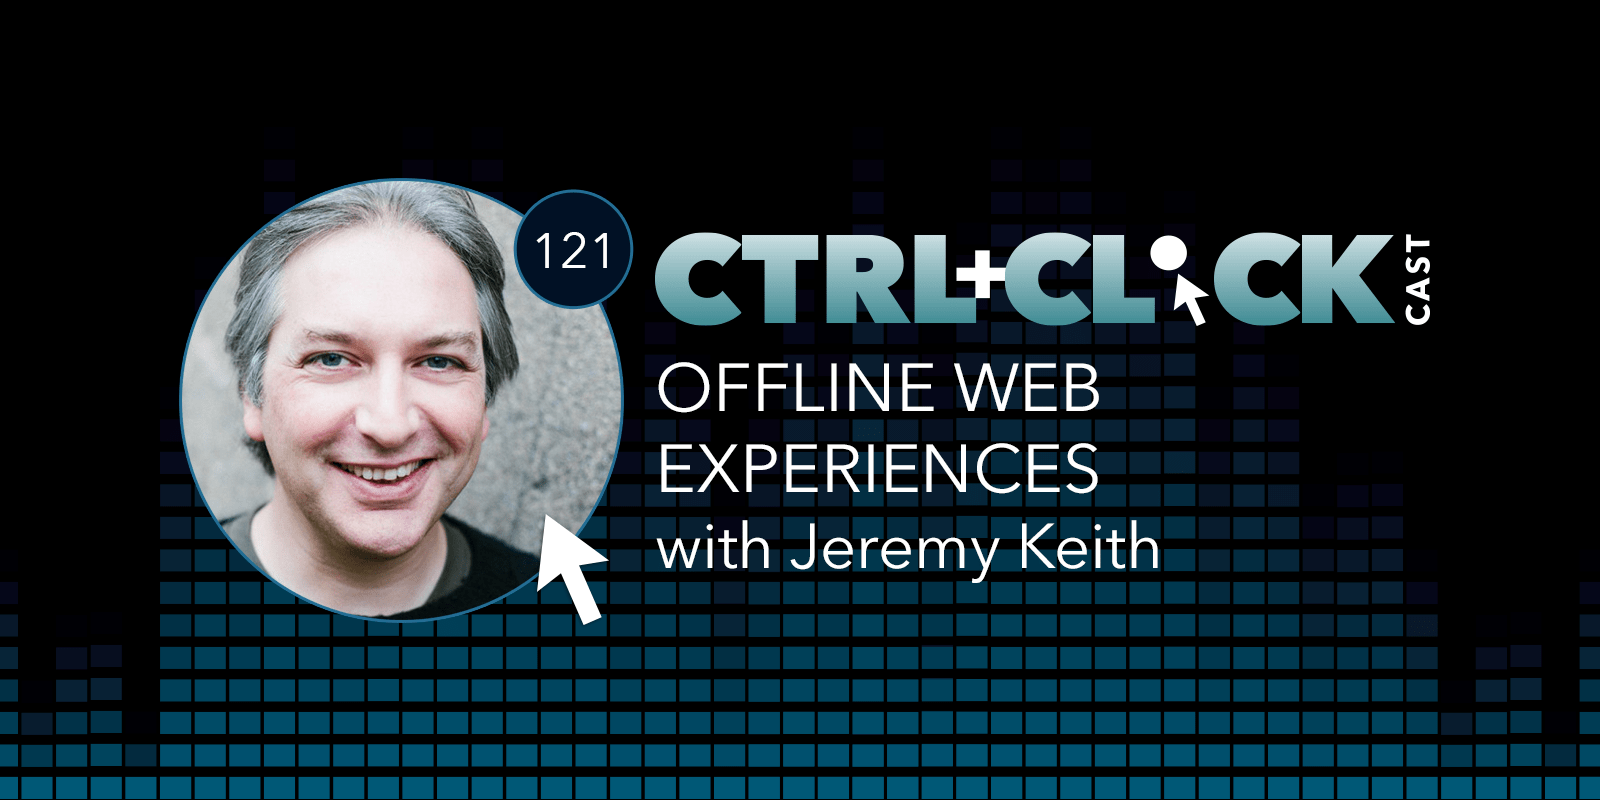 Offline Web Experiences with Jeremy Keith « CTRL+CLICK CAST